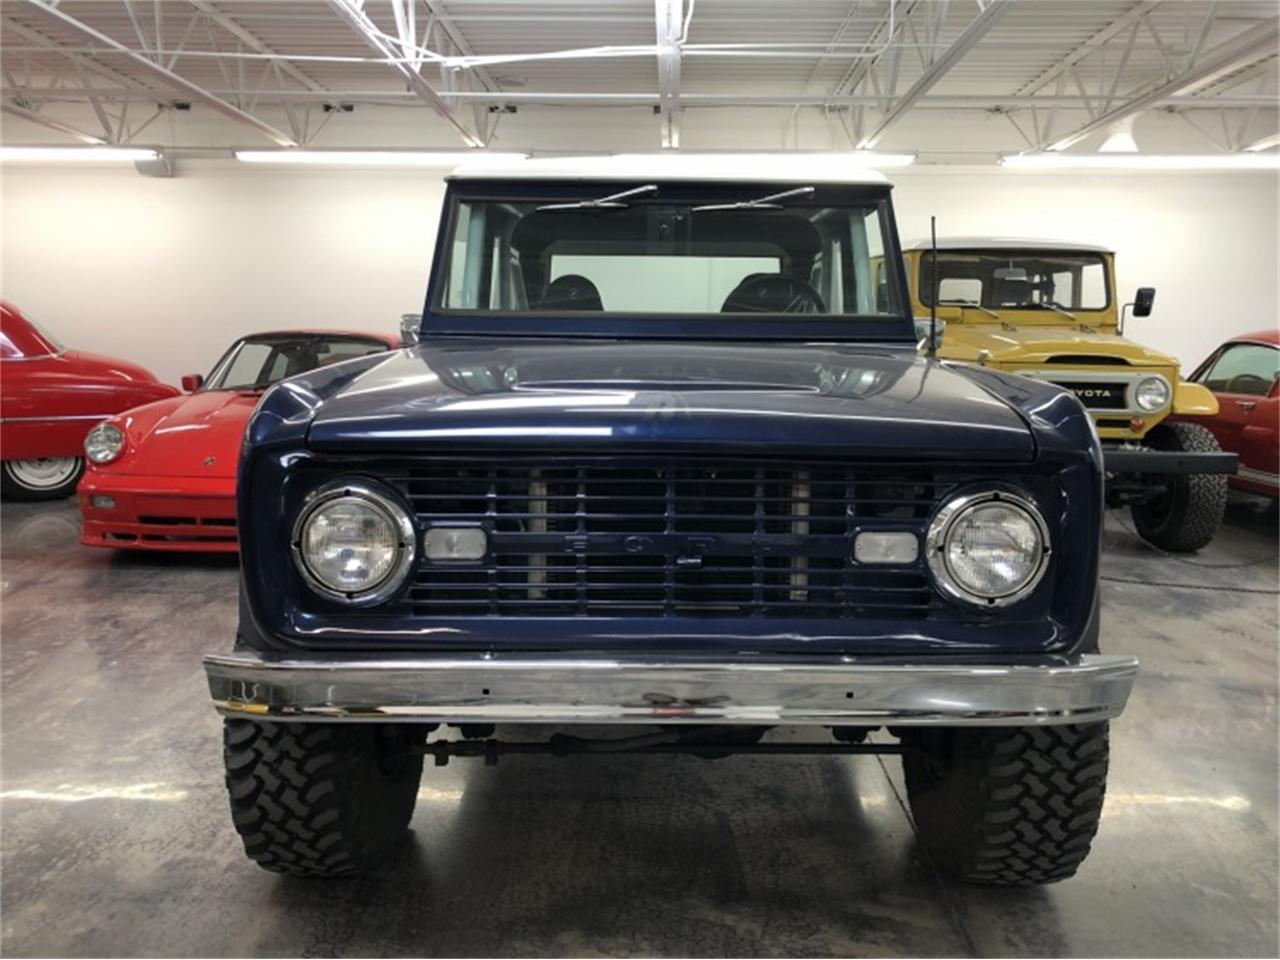 Large Picture of '71 Bronco located in Sparks Nevada Auction Vehicle - QNQD